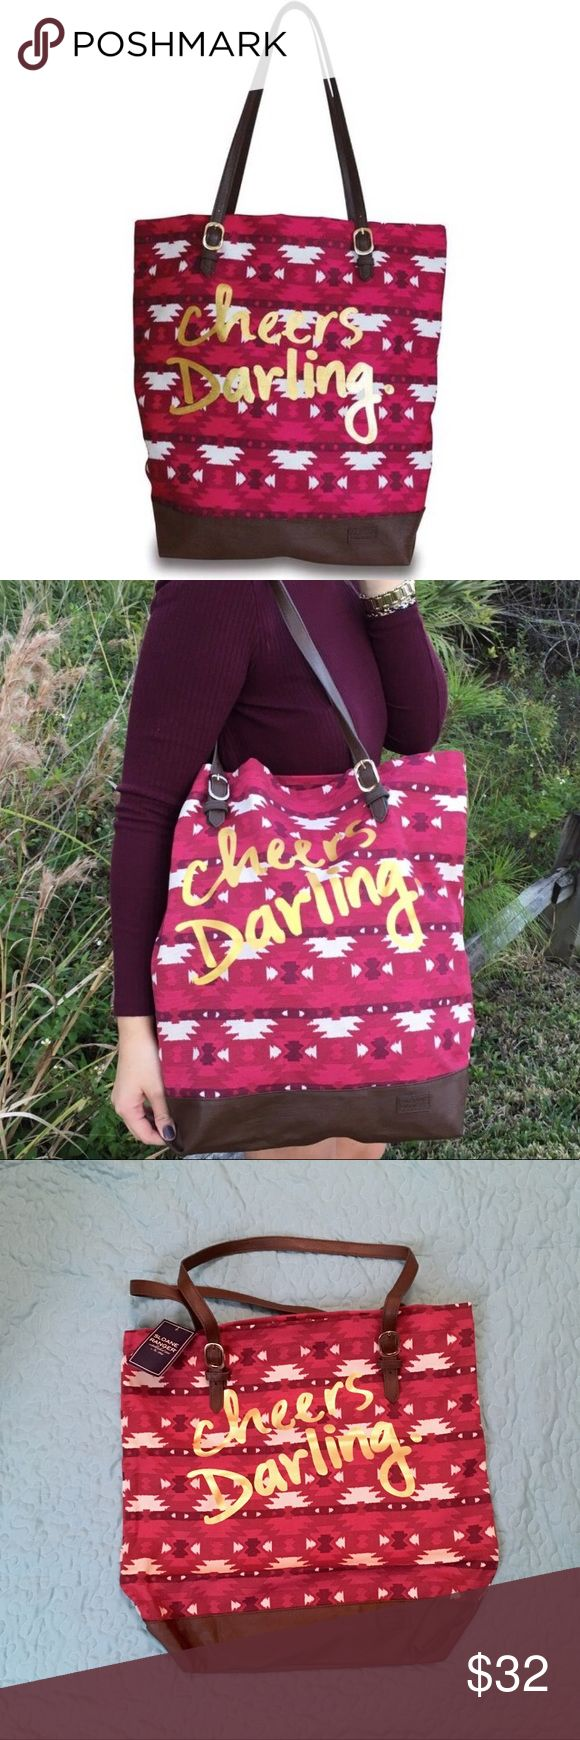 "JUST IN‼️ ""Cheers Darling"" Canvas Tote Bag brand new and just in! Features embossed metal hardware and on-track Aztec print, as well as a cute slogan in gold! 100% cotton exterior and very durable. 💃  - Printed canvas with gold print detailing - Adjustable shoulder strap  - Vegan friendly leather trim  - Dimensions: 17"" x 4.65"" x 16"" - Imported - Original price: $48 All For Color Bags Totes"